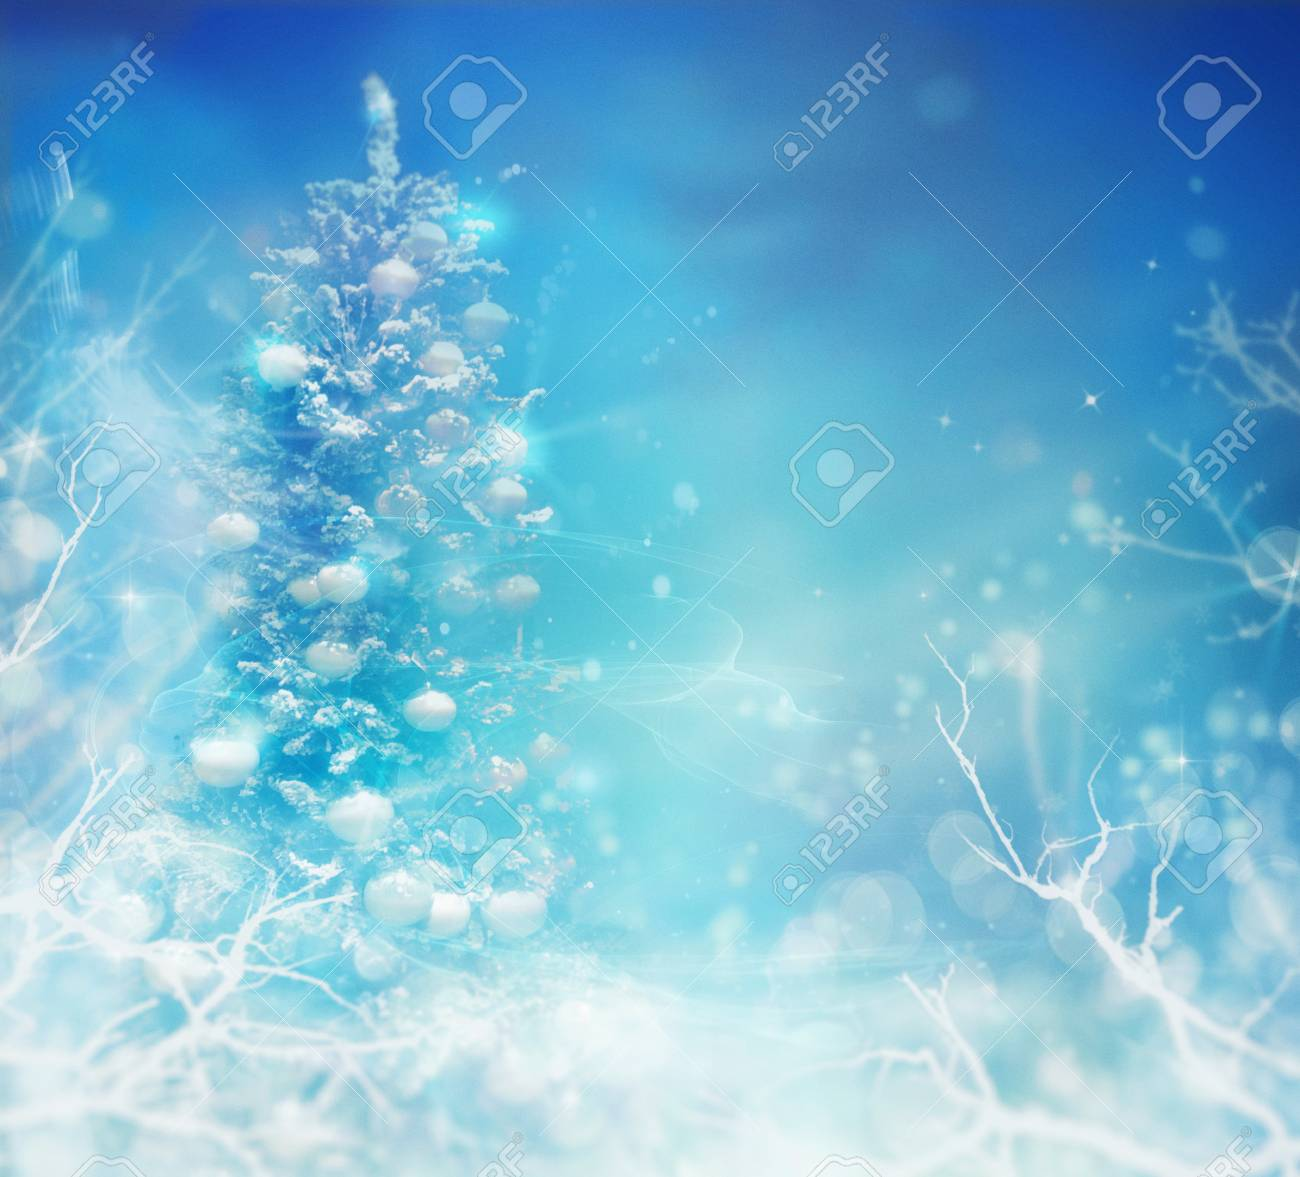 Frozen Christmas.Winter Frozen Background Winter Christmas Concept With Tree